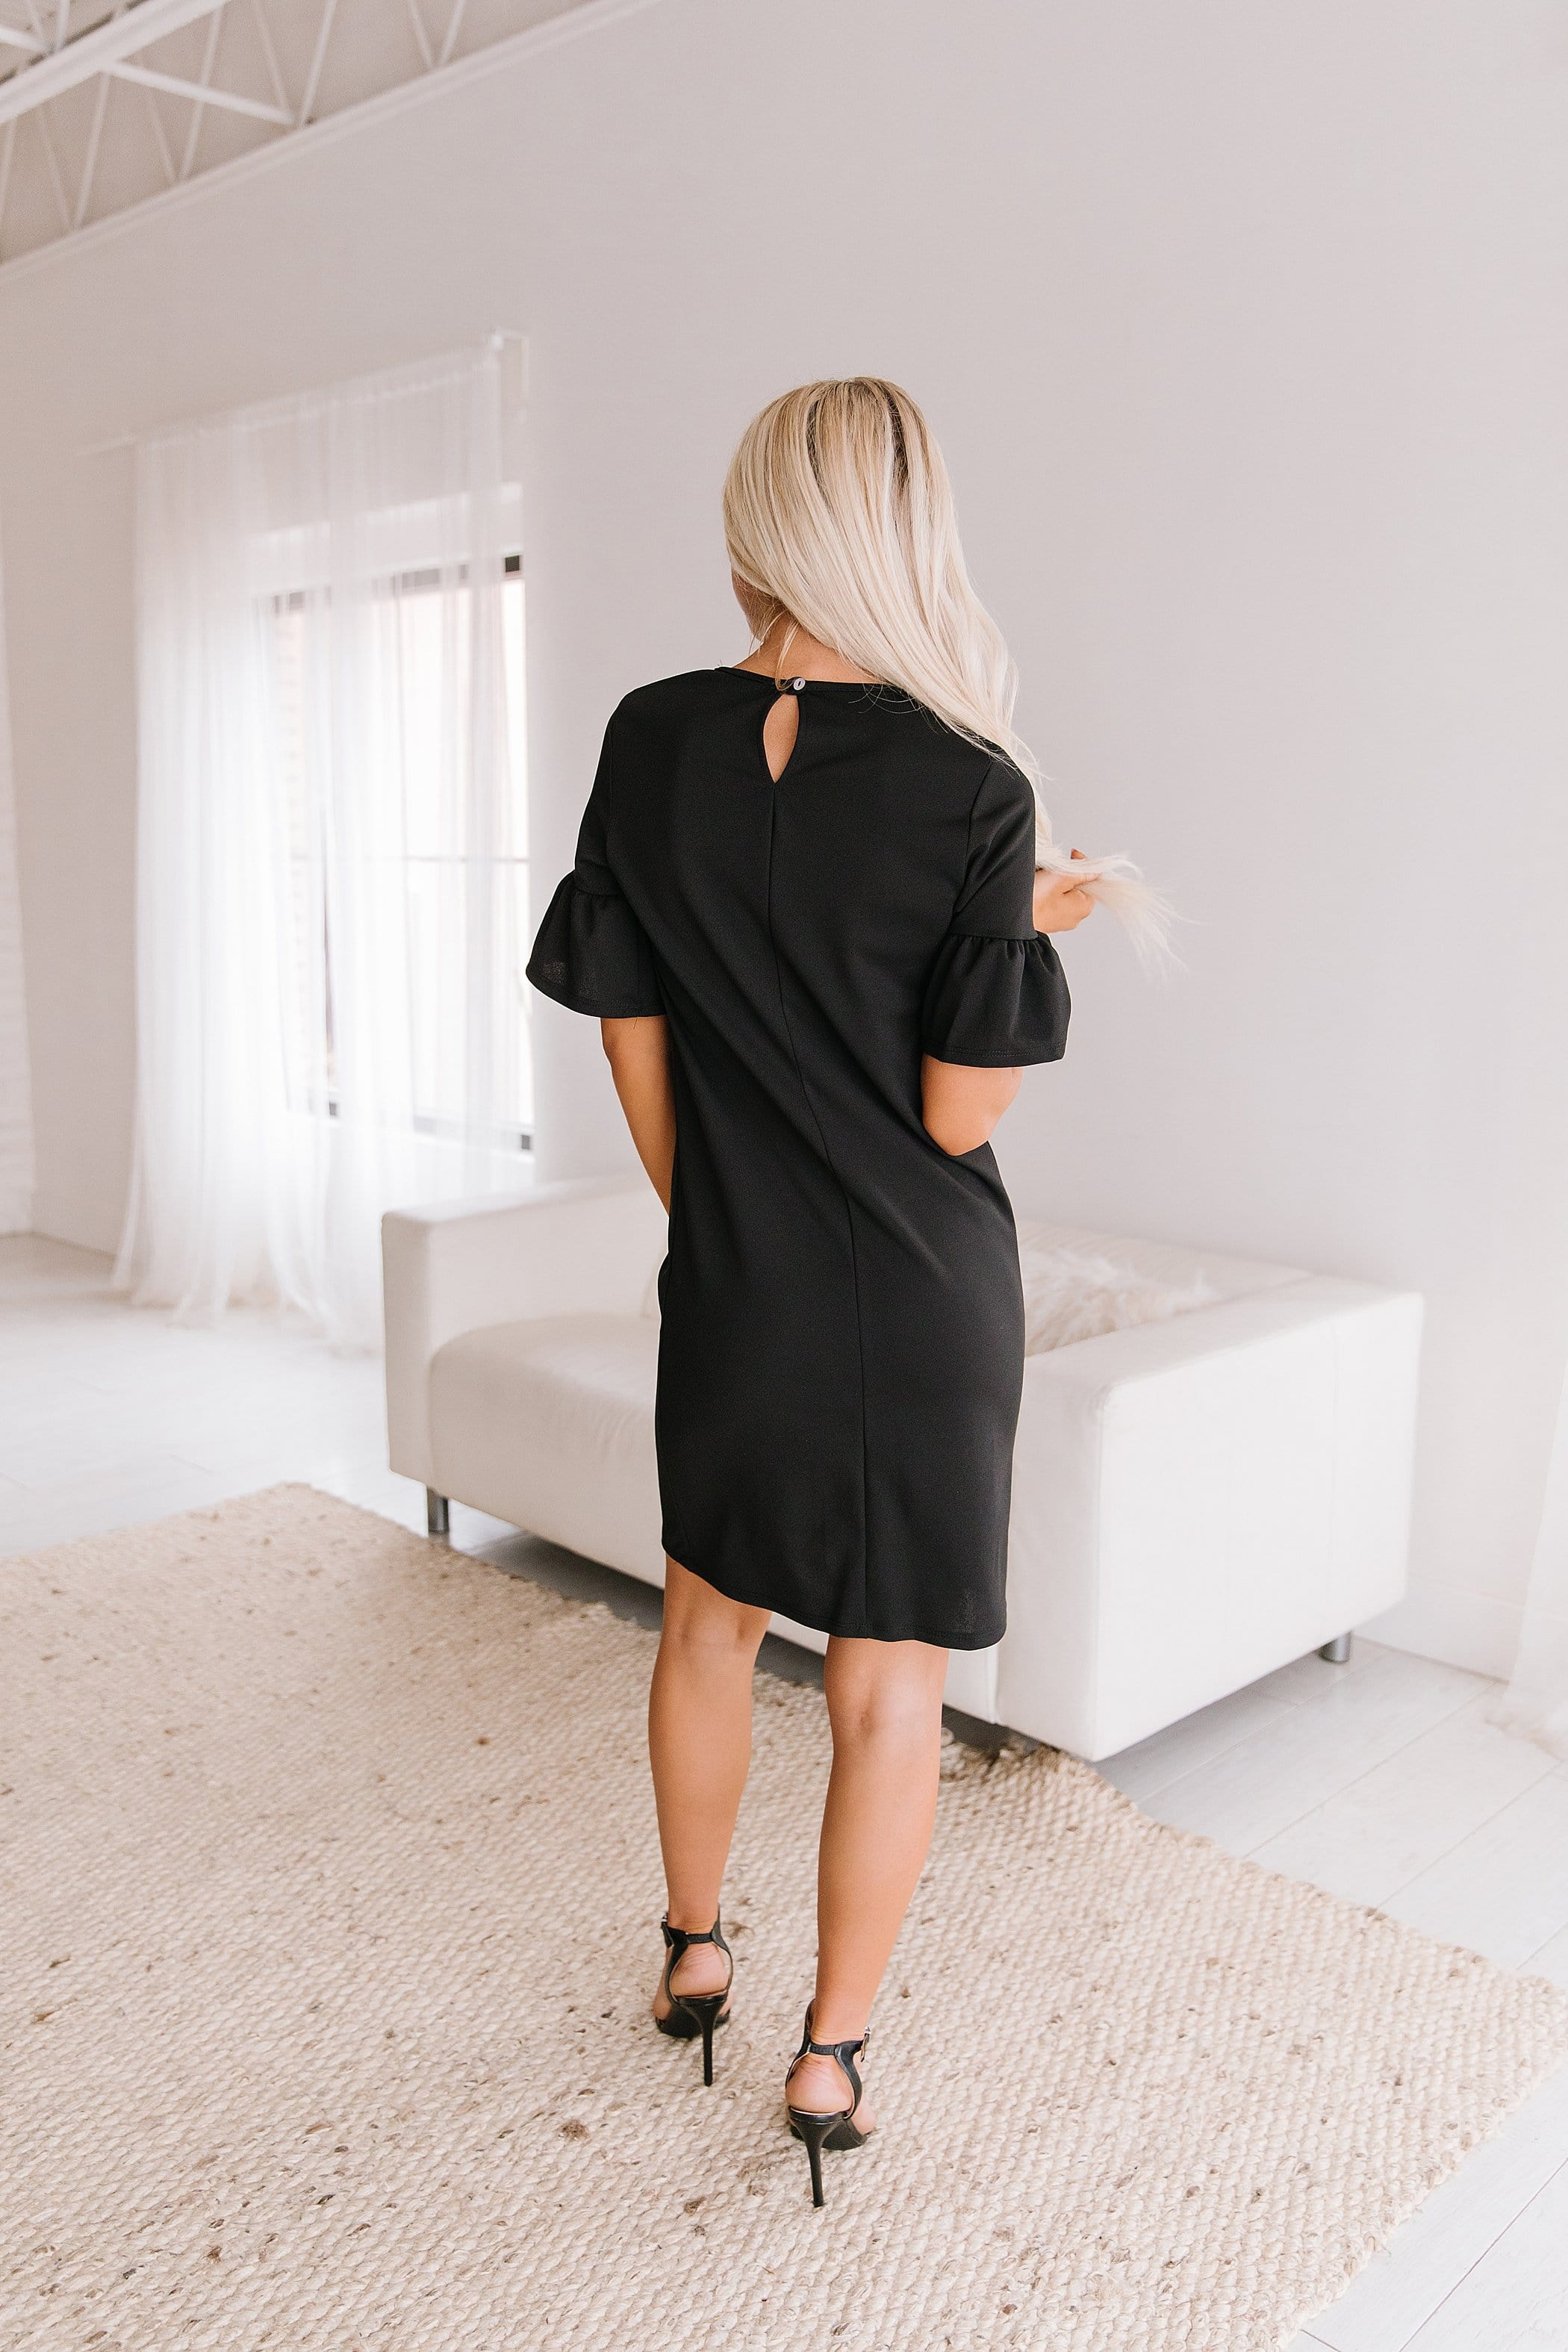 The Angelia Ruffle Sleeve Dress in Black and Mauve